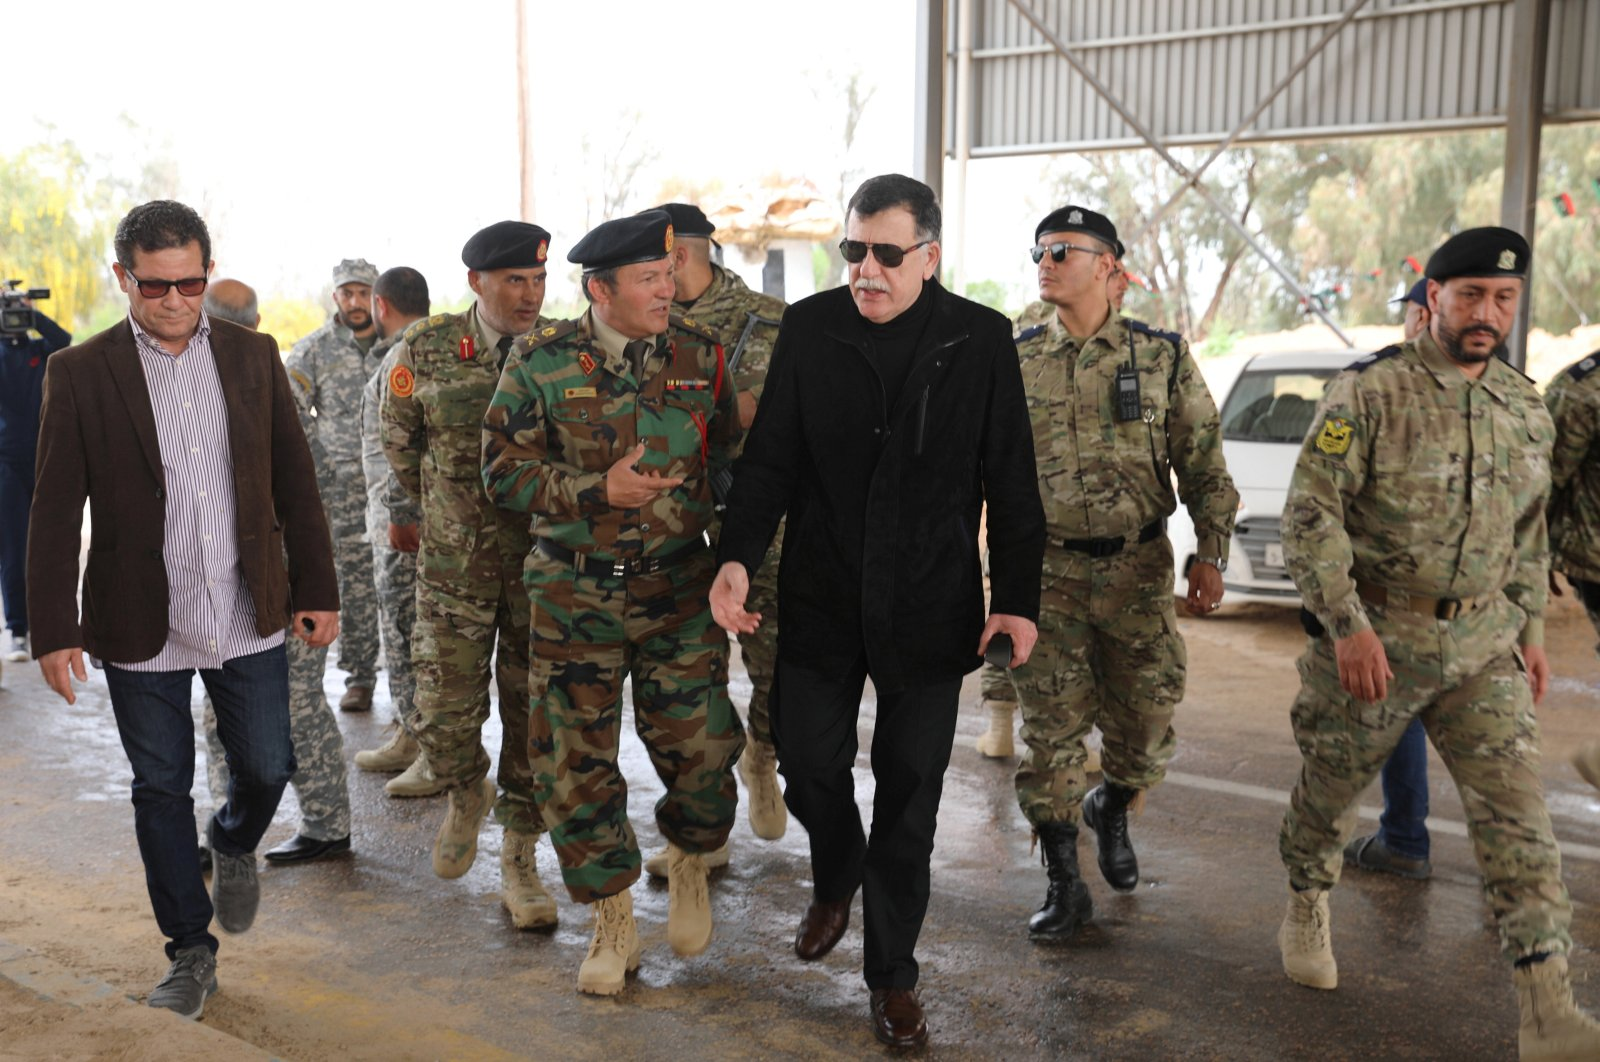 Libyan Prime Minister Fayez al-Sarraj arrives at a checkpoint after Government of National Accord (GNA) forces retook it from Khalifa Haftar-aligned militias, west of Tripoli, Libya, April 5, 2019. (Reuters Photo)